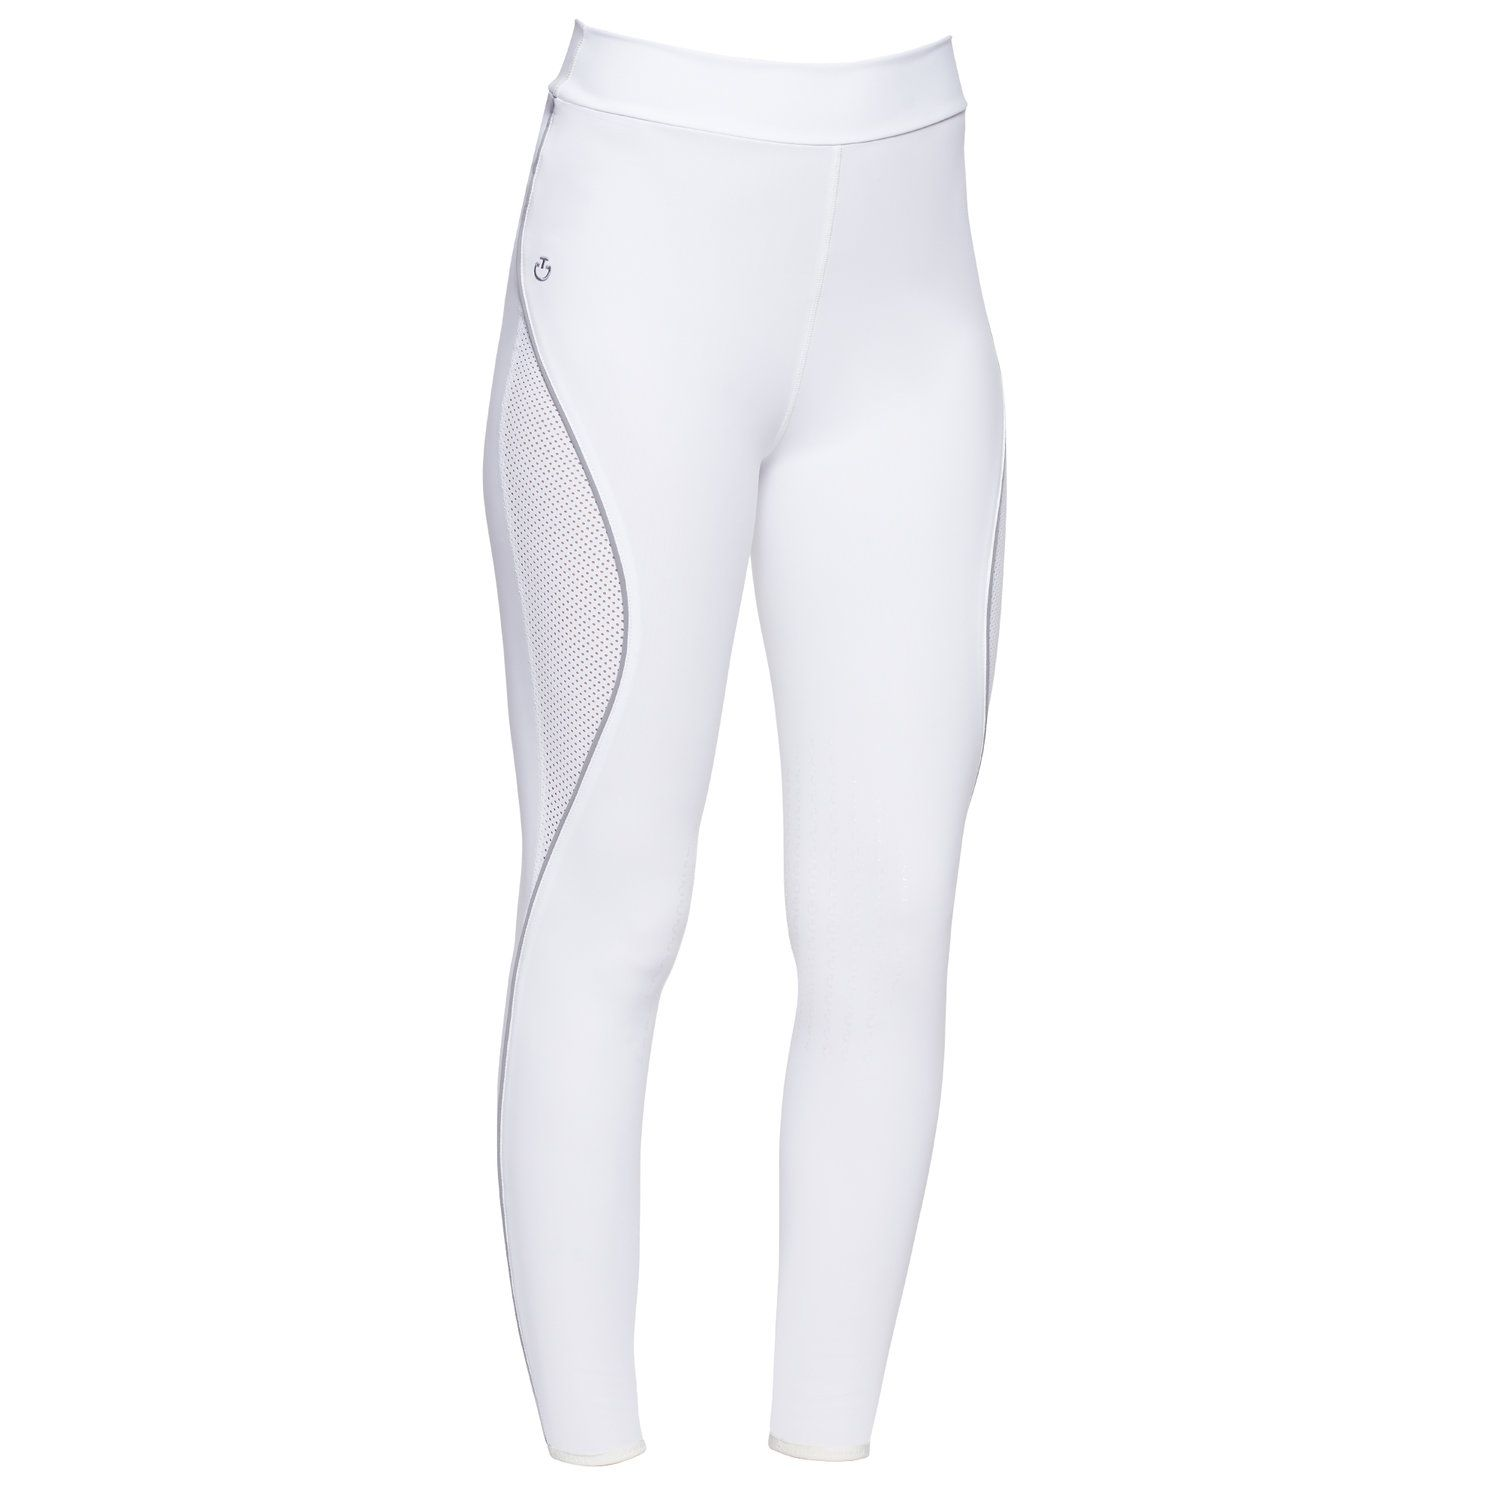 Riding leggins with perforated inserts